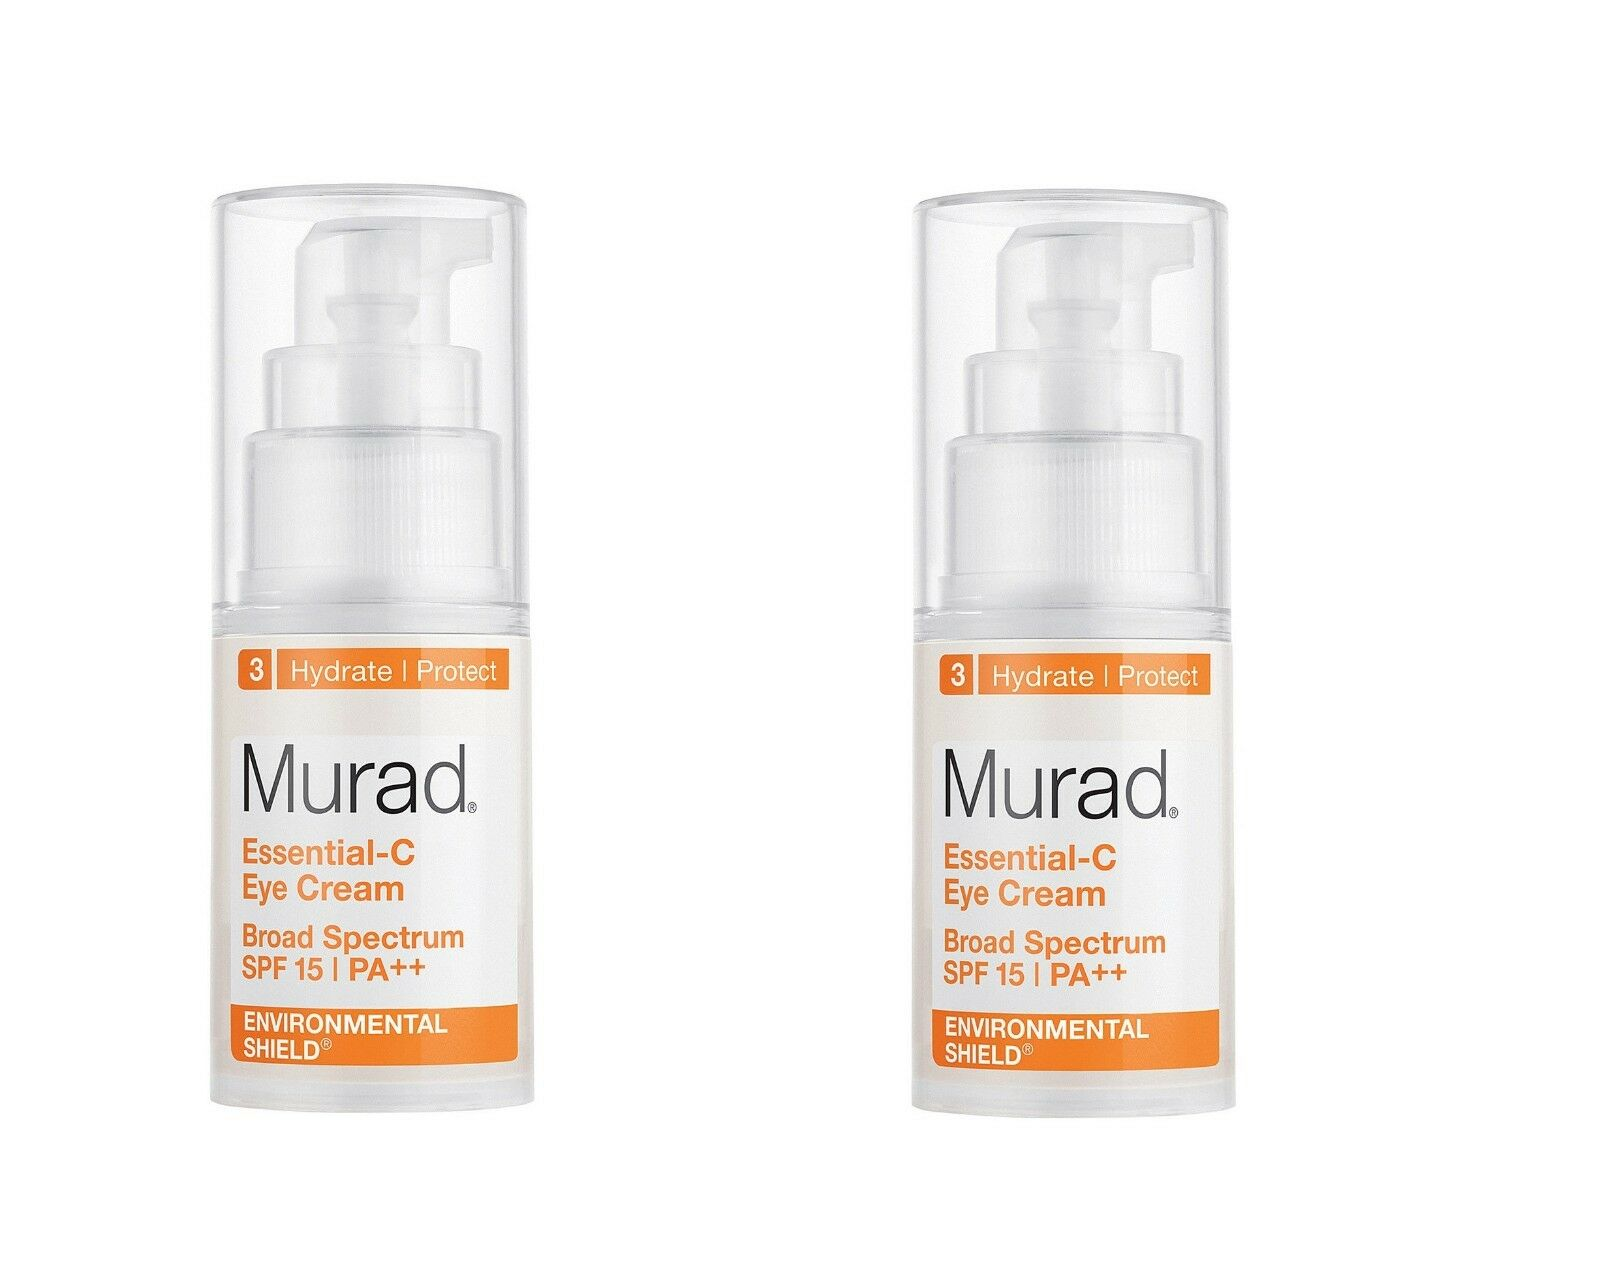 2-Murad Essential-C Eye Cream SPF15 PA++ 0.5 fl oz / 15mL x